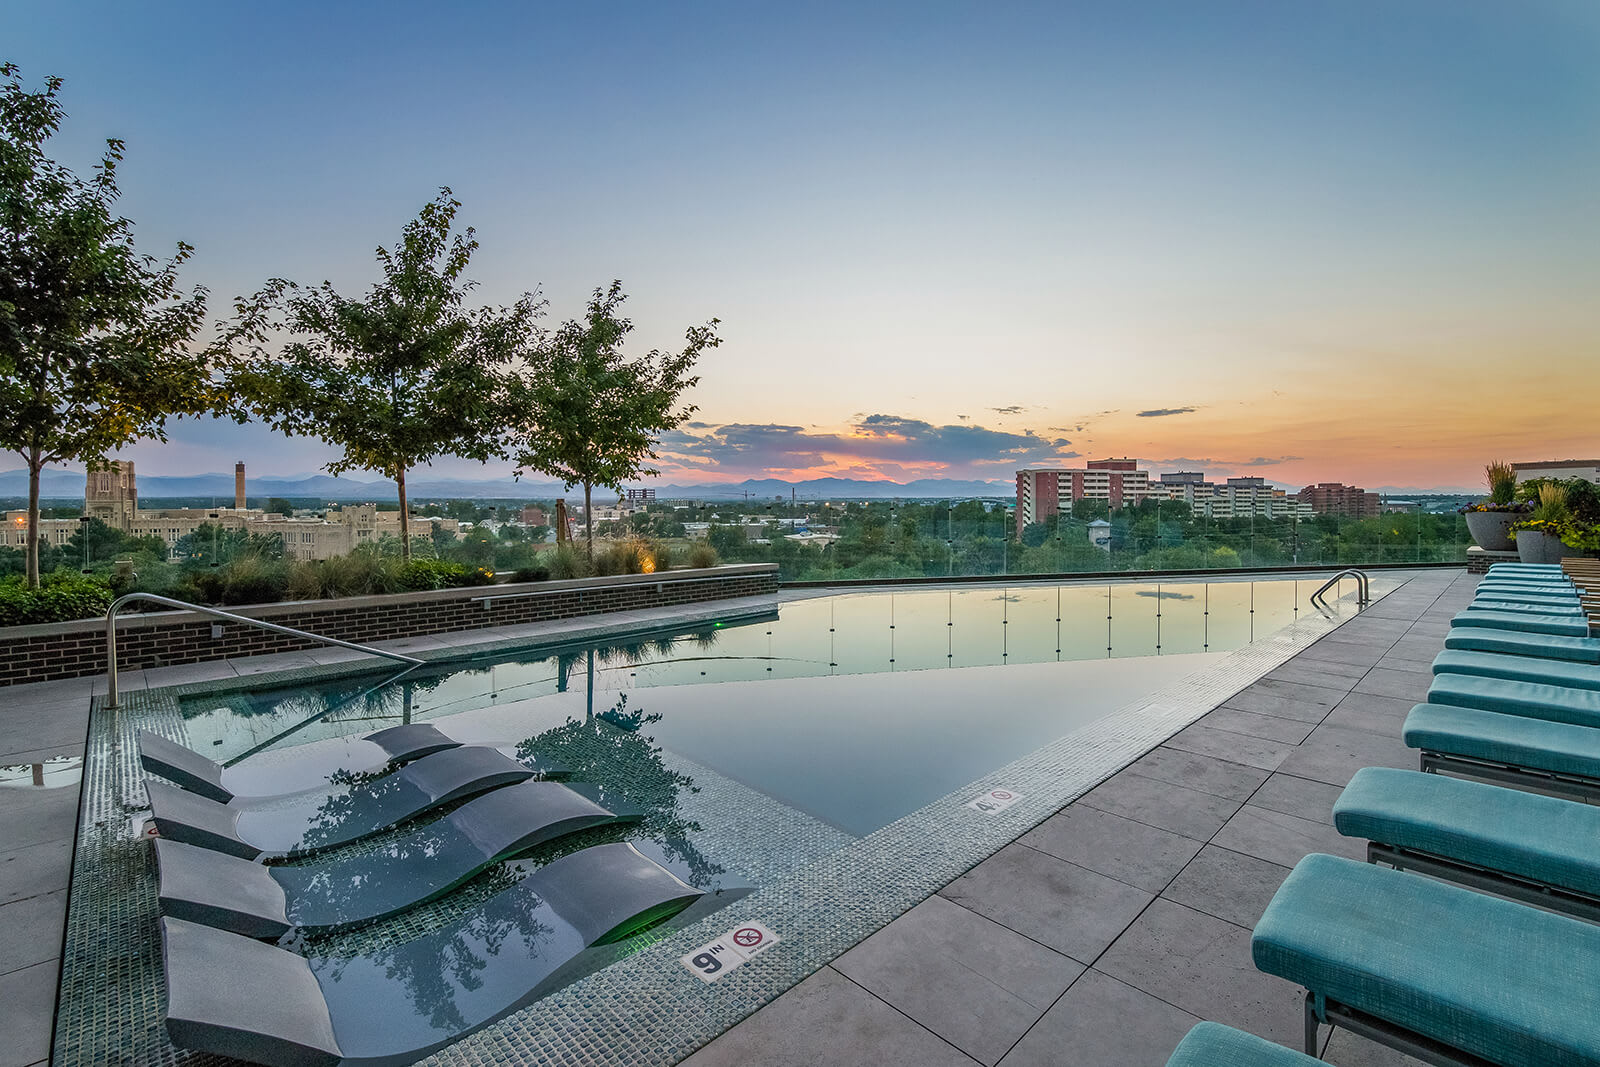 Invigorating Infinity Edge Pool with Stunning Views at 1000 Speer by Windsor, 1000 Speer Blvd., Denver